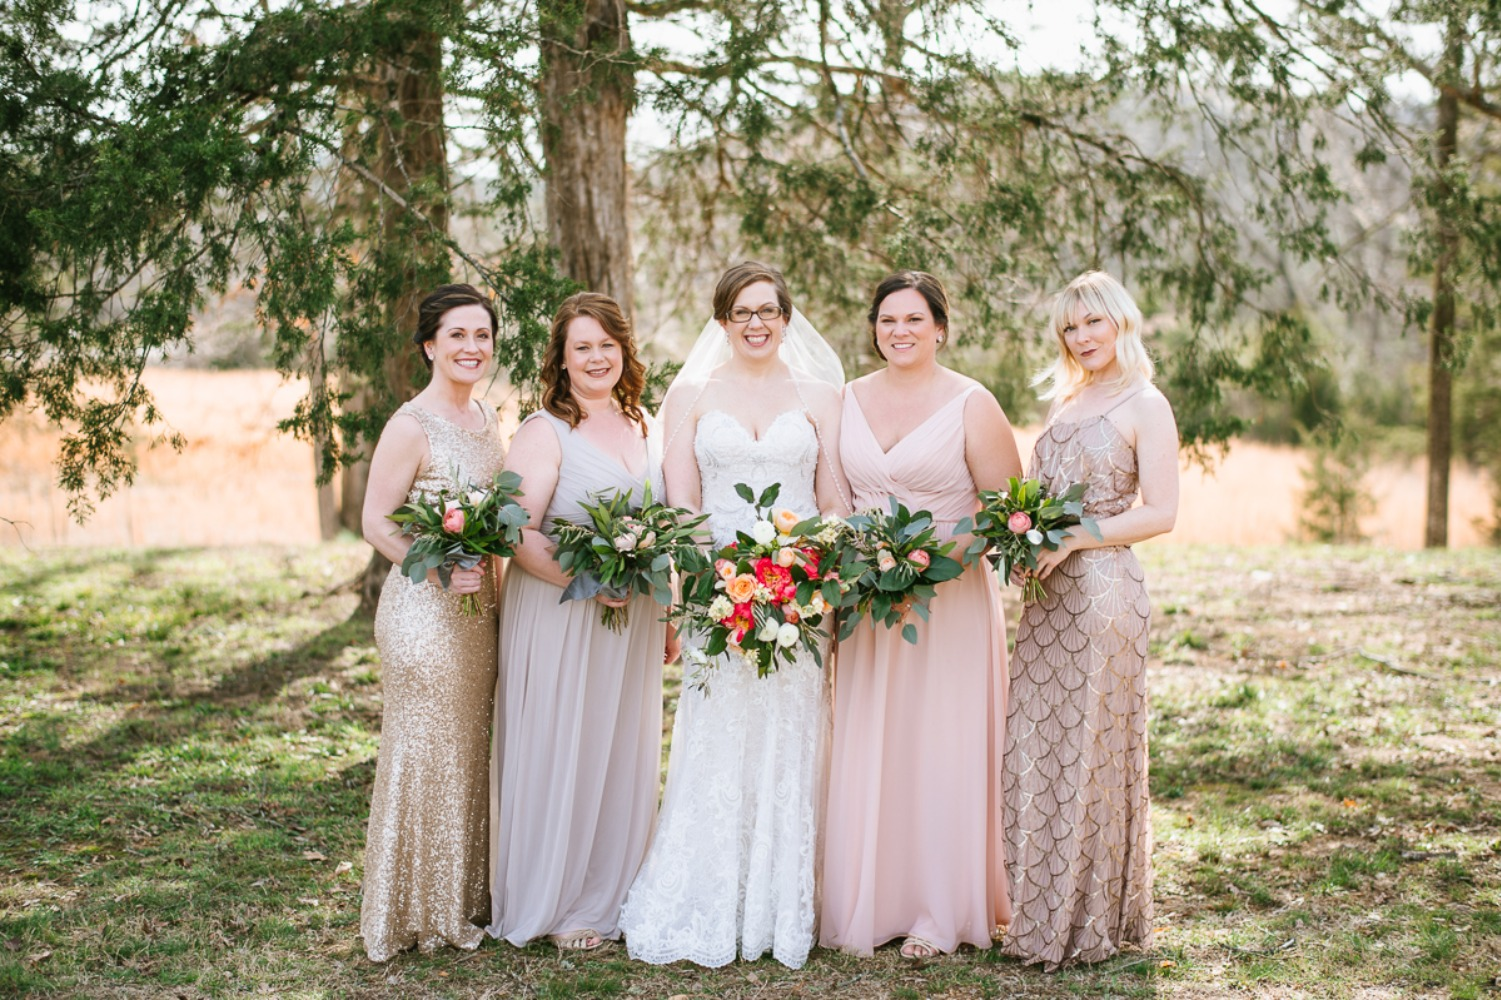 mismatched bridesmaids dressing in blush and gold